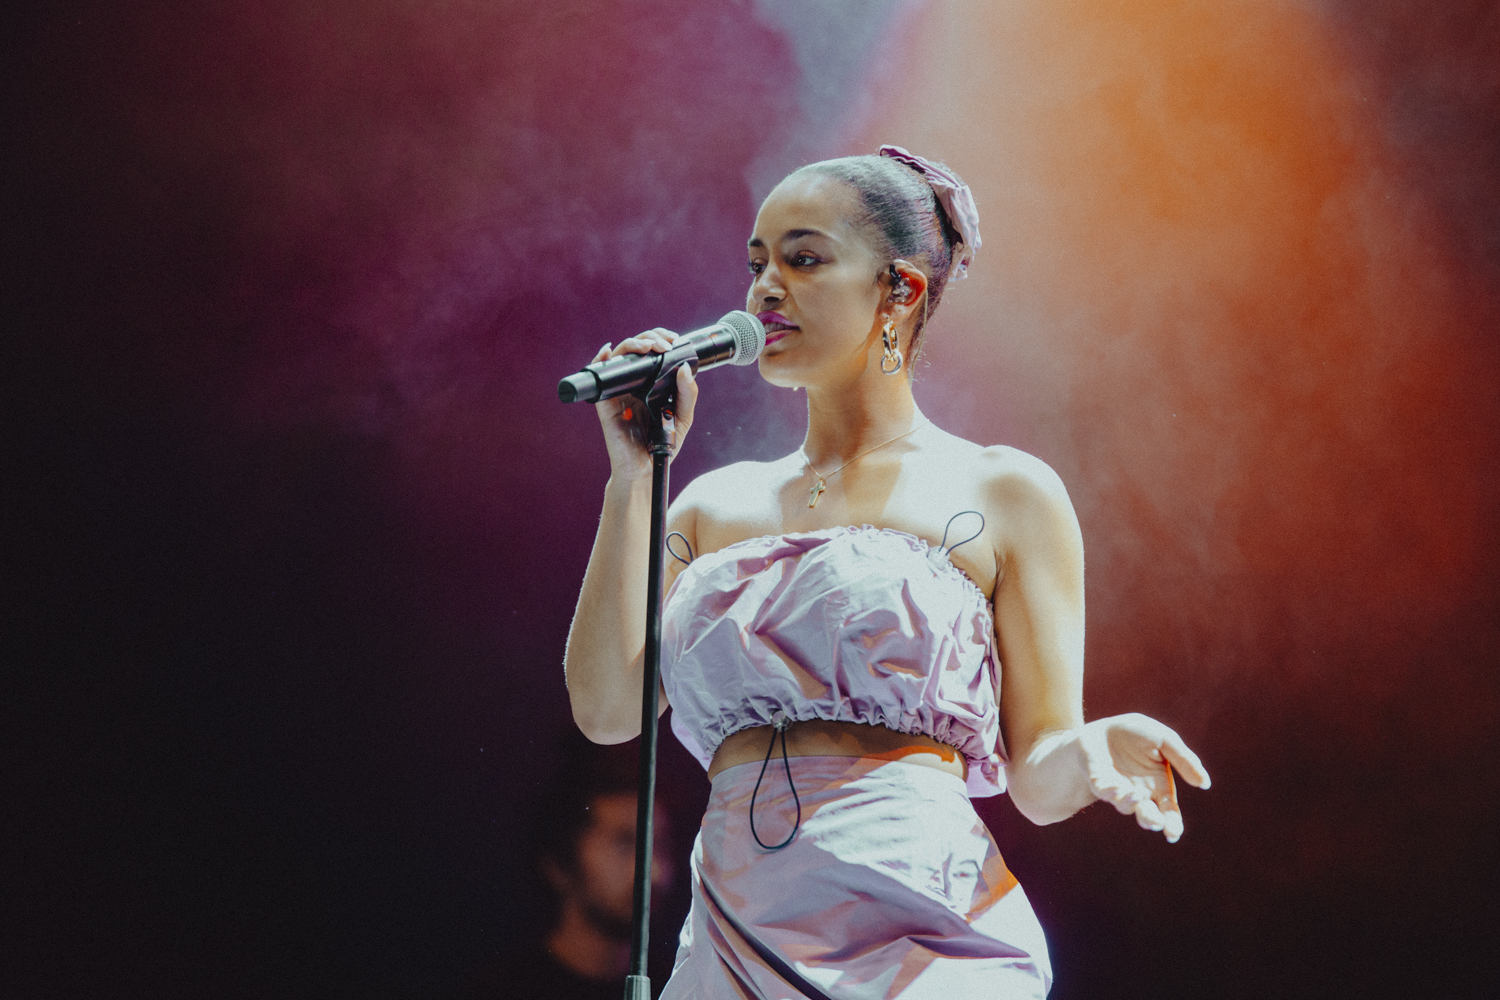 JorjaSmith_EVL-11 - Way Out West 2018 - Emma Viola Lilja